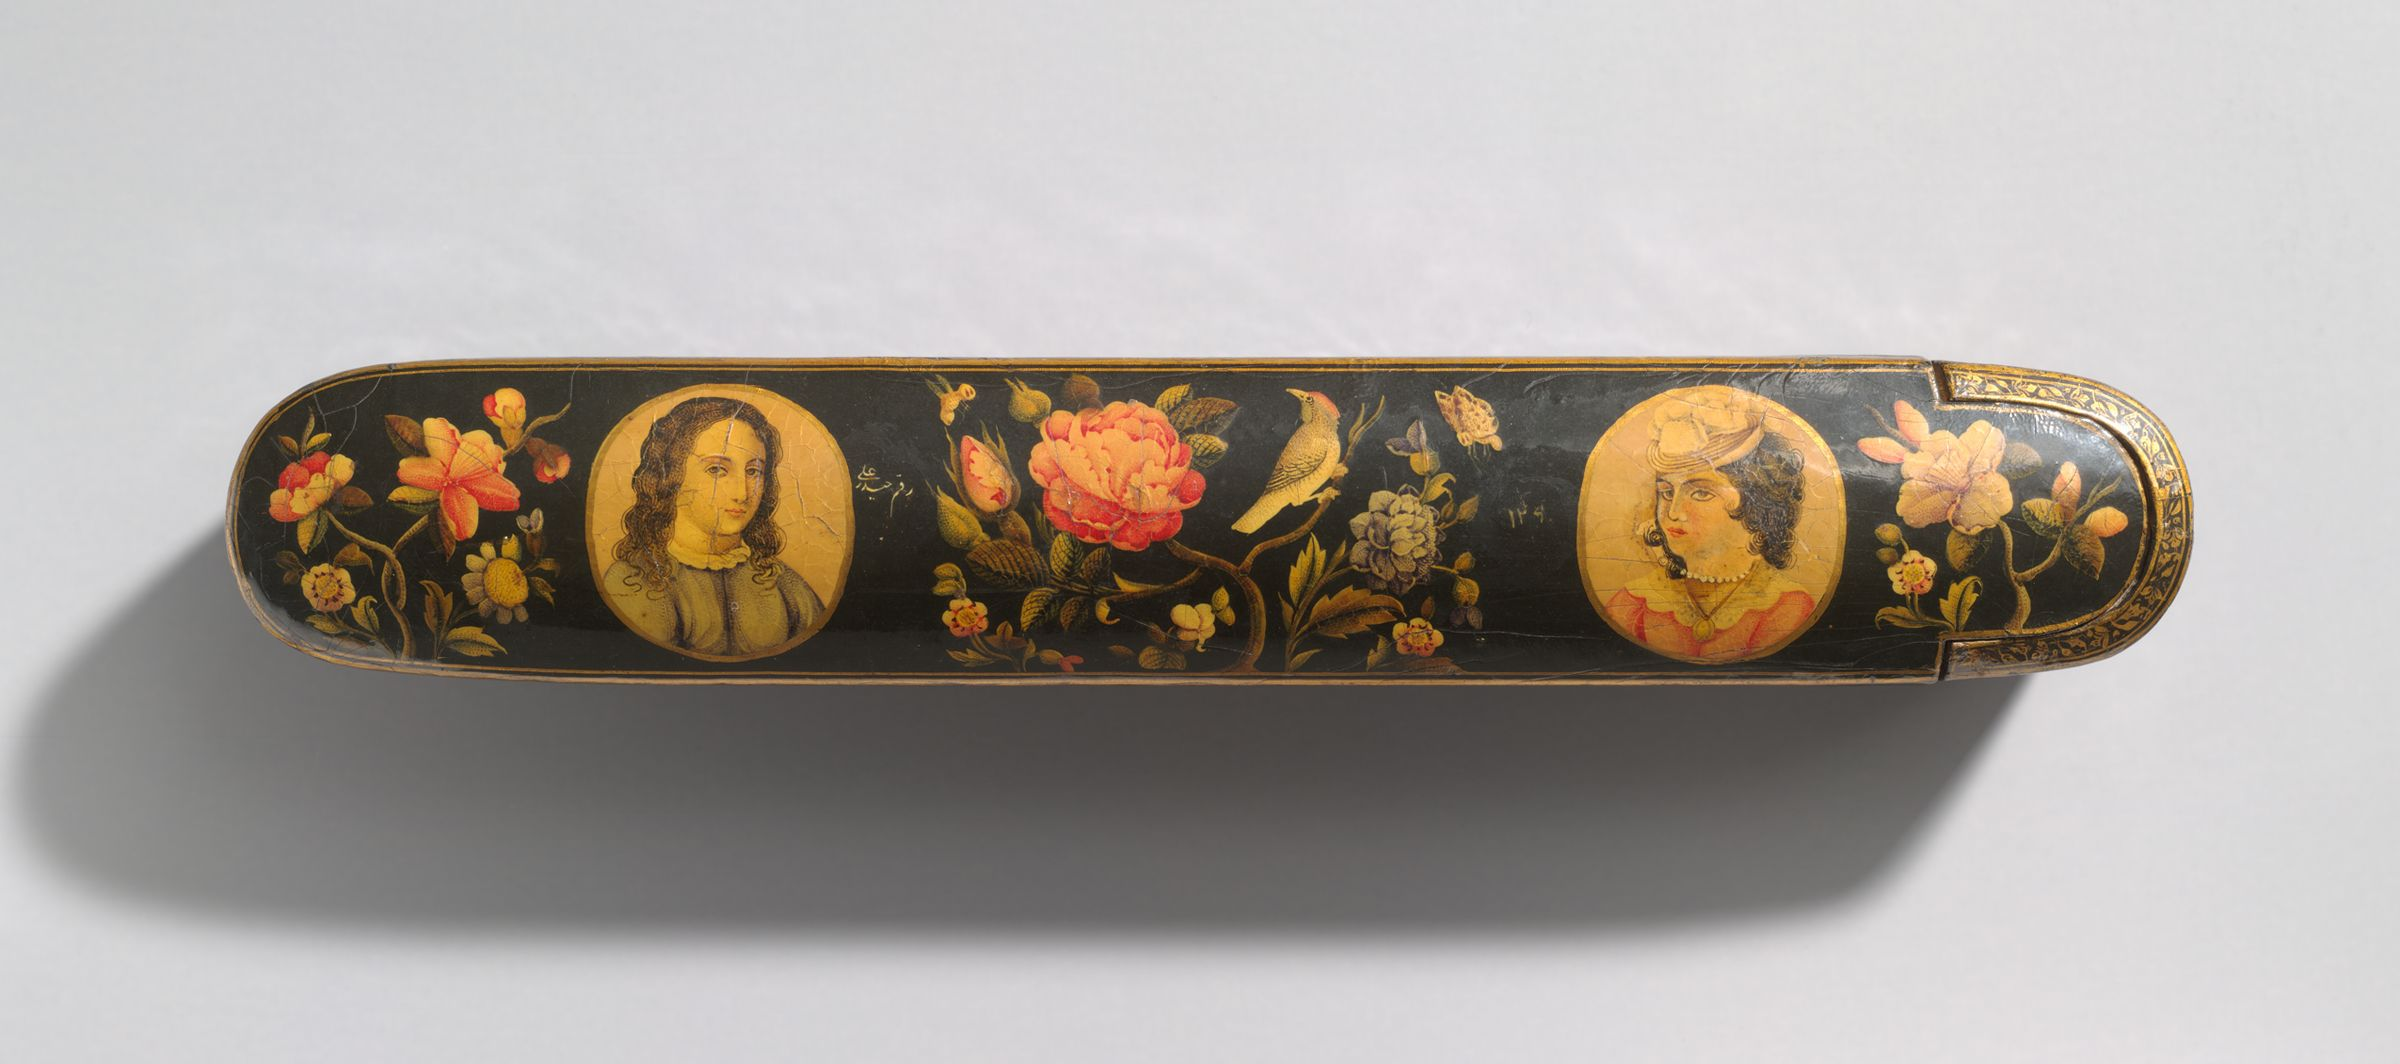 Pen Box With Flowers, Birds, And Portraits